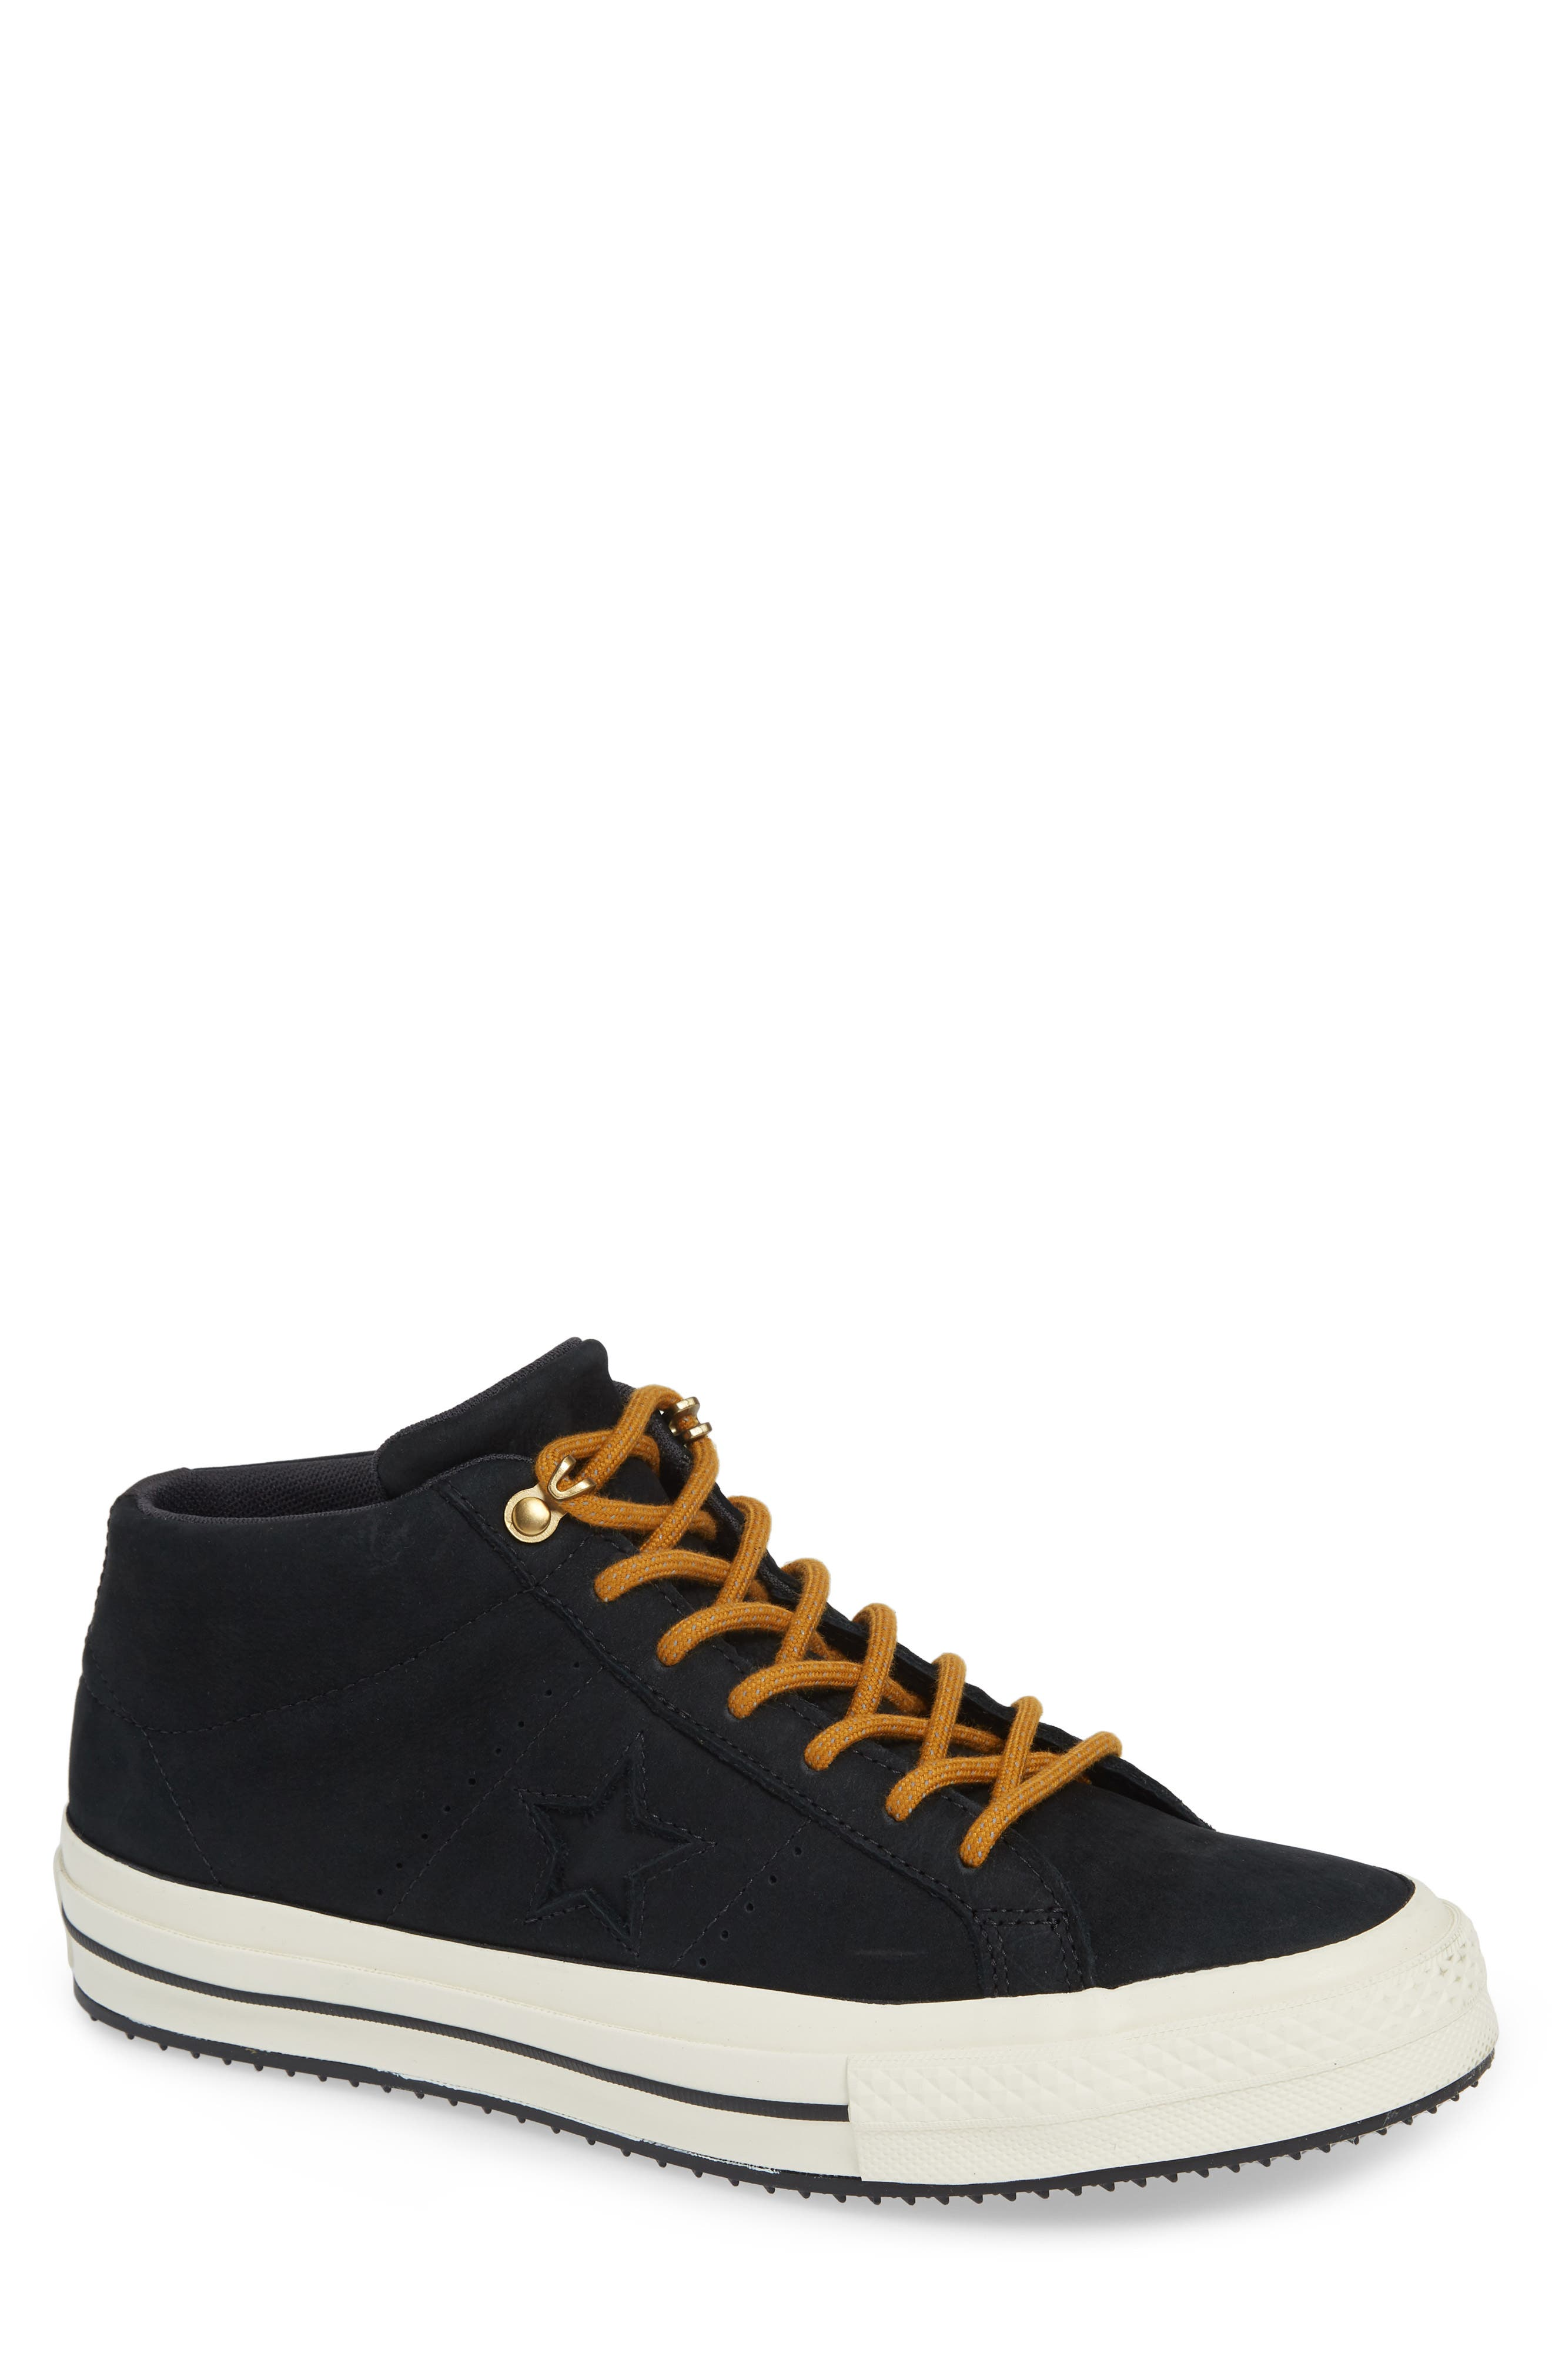 One Star Mid Counter Climate Scout Sneaker,                             Main thumbnail 1, color,                             BLACK/ BLUE HERO/ TEAK SUEDE